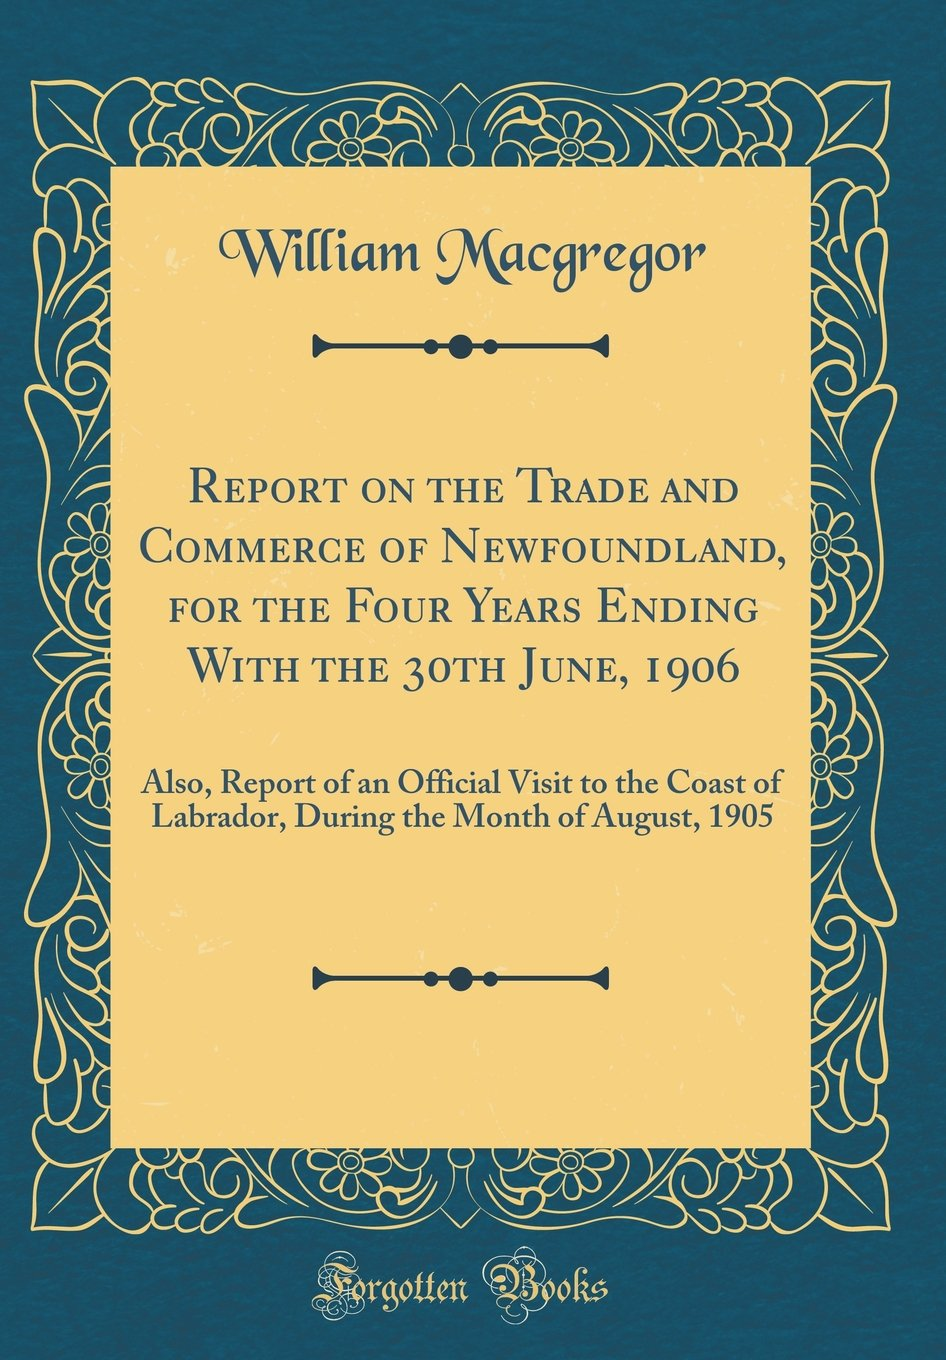 Read Online Report on the Trade and Commerce of Newfoundland, for the Four Years Ending with the 30th June, 1906: Also, Report of an Official Visit to the Coast ... the Month of August, 1905 (Classic Reprint) pdf epub